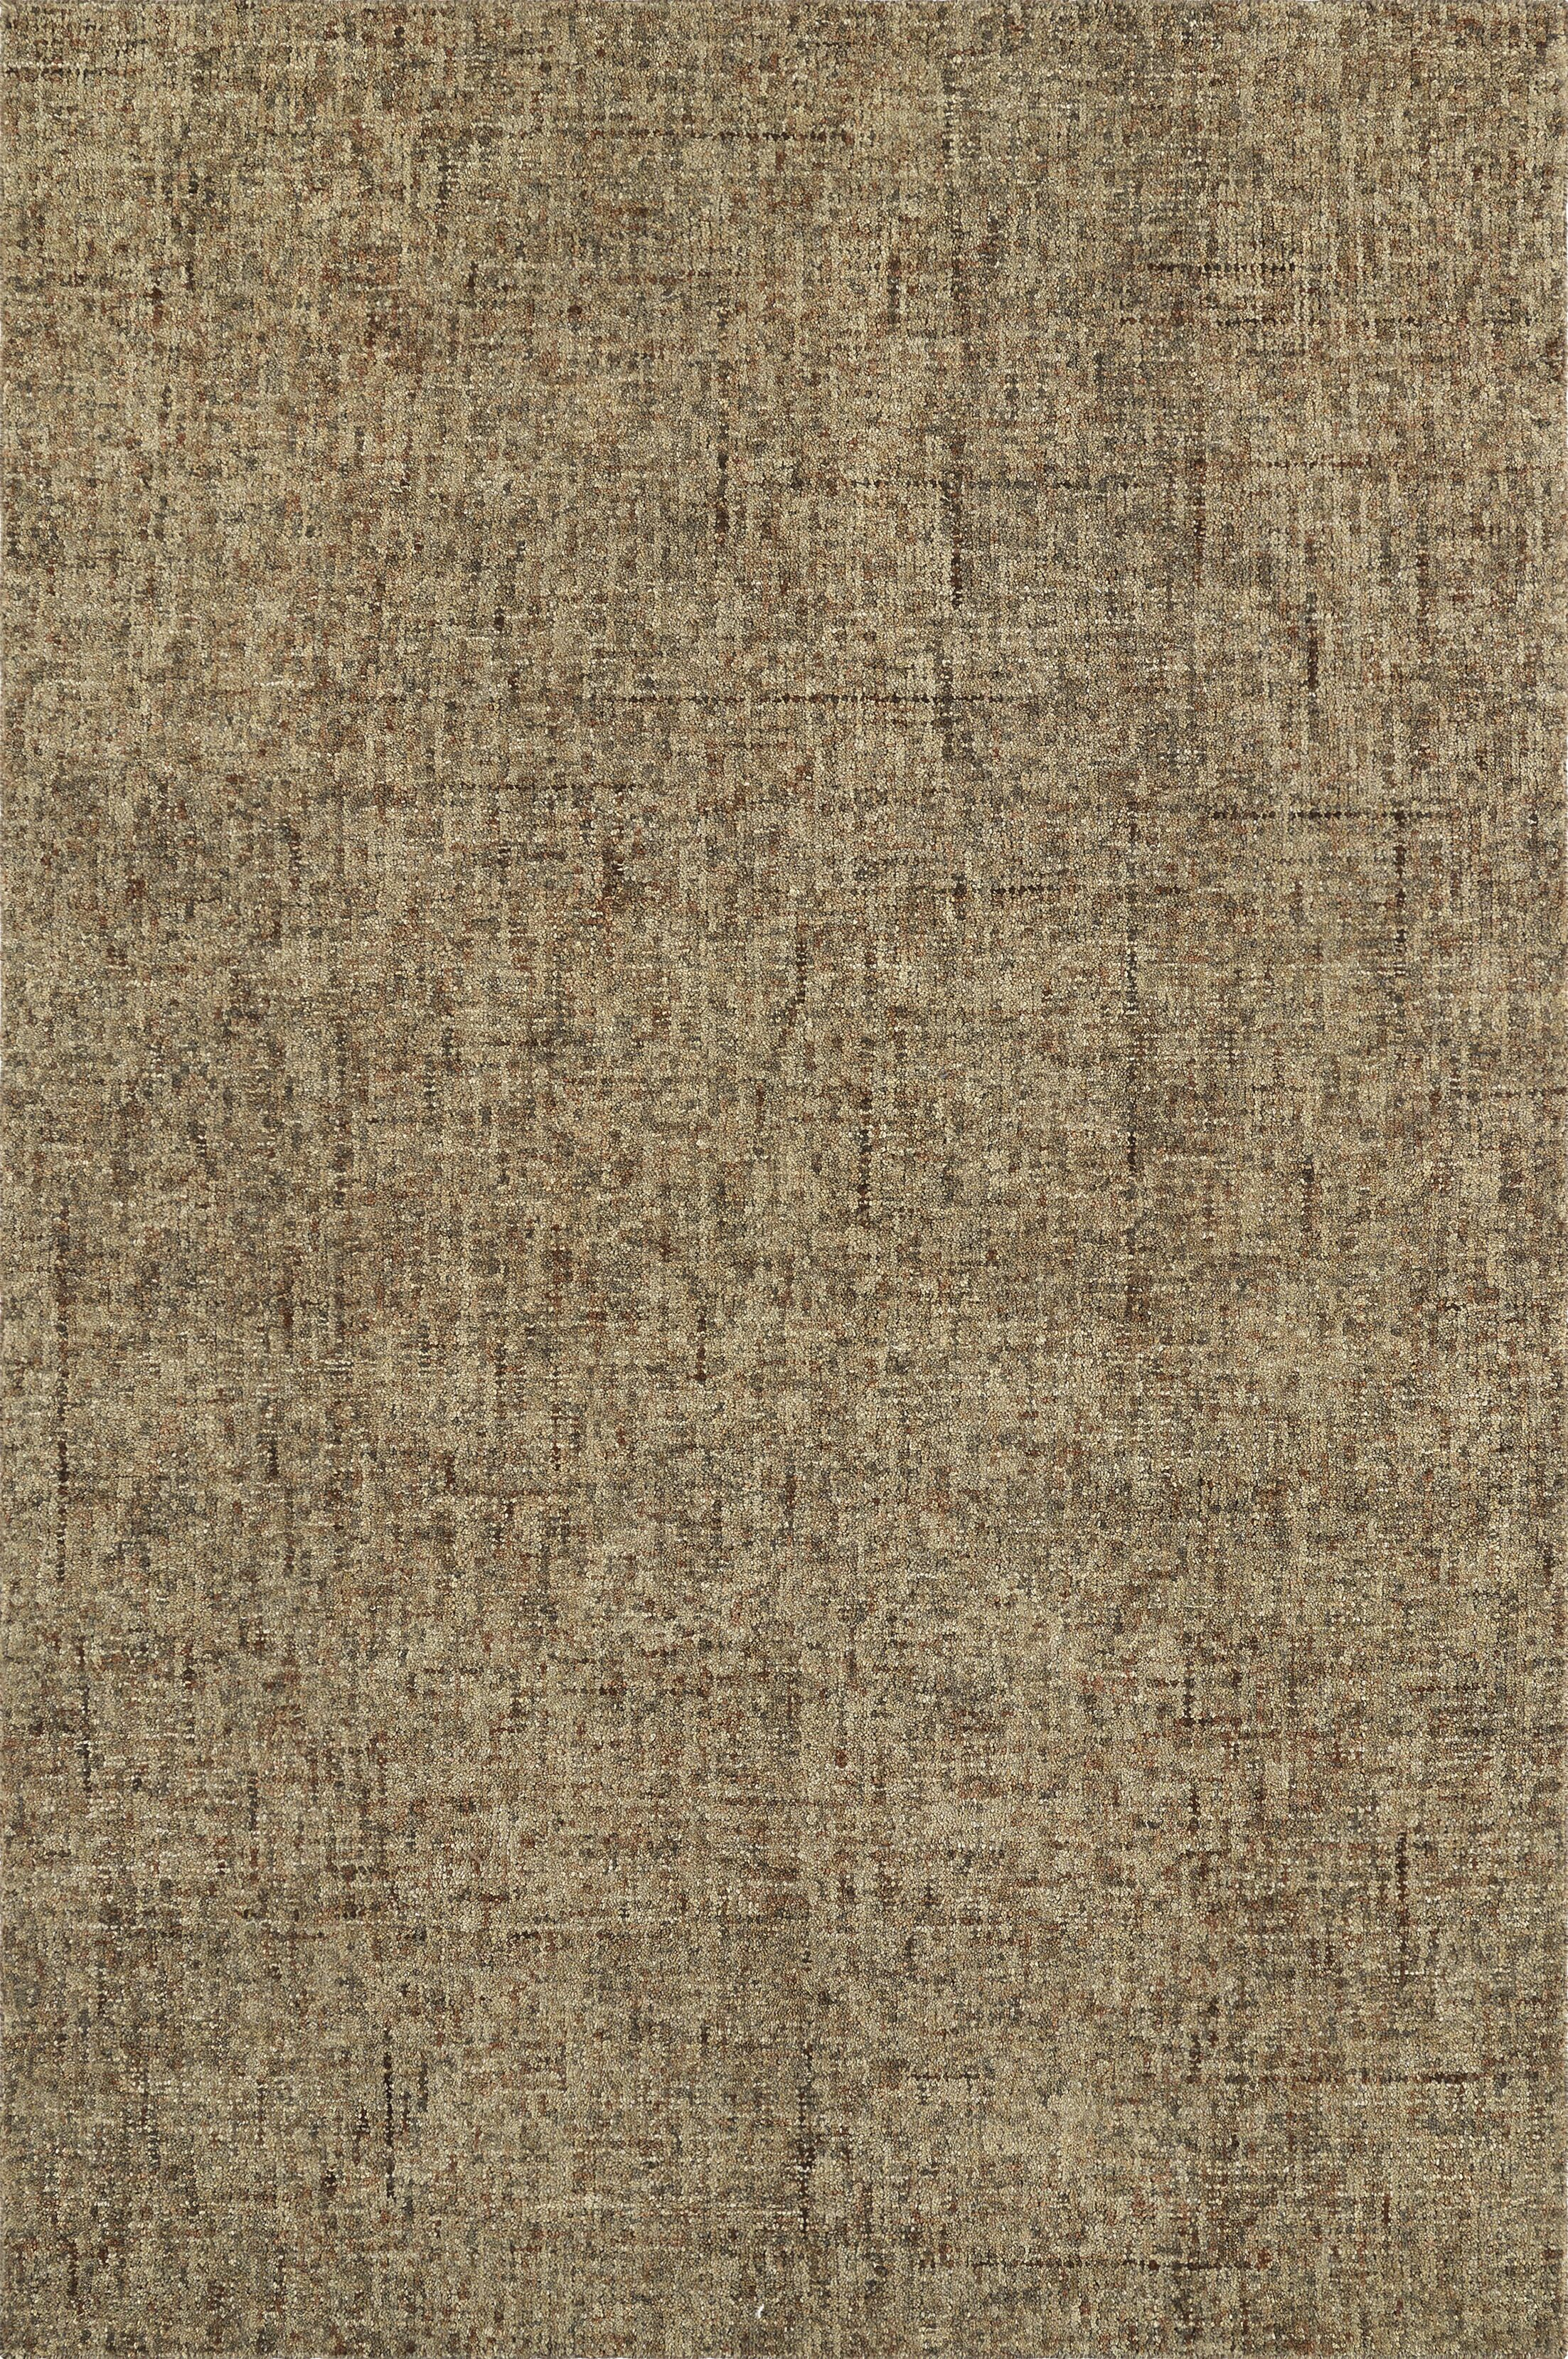 Gilboa Hand-Tufted Wool Desert Area Rug Rug Size: Rectangle 8' x 10'